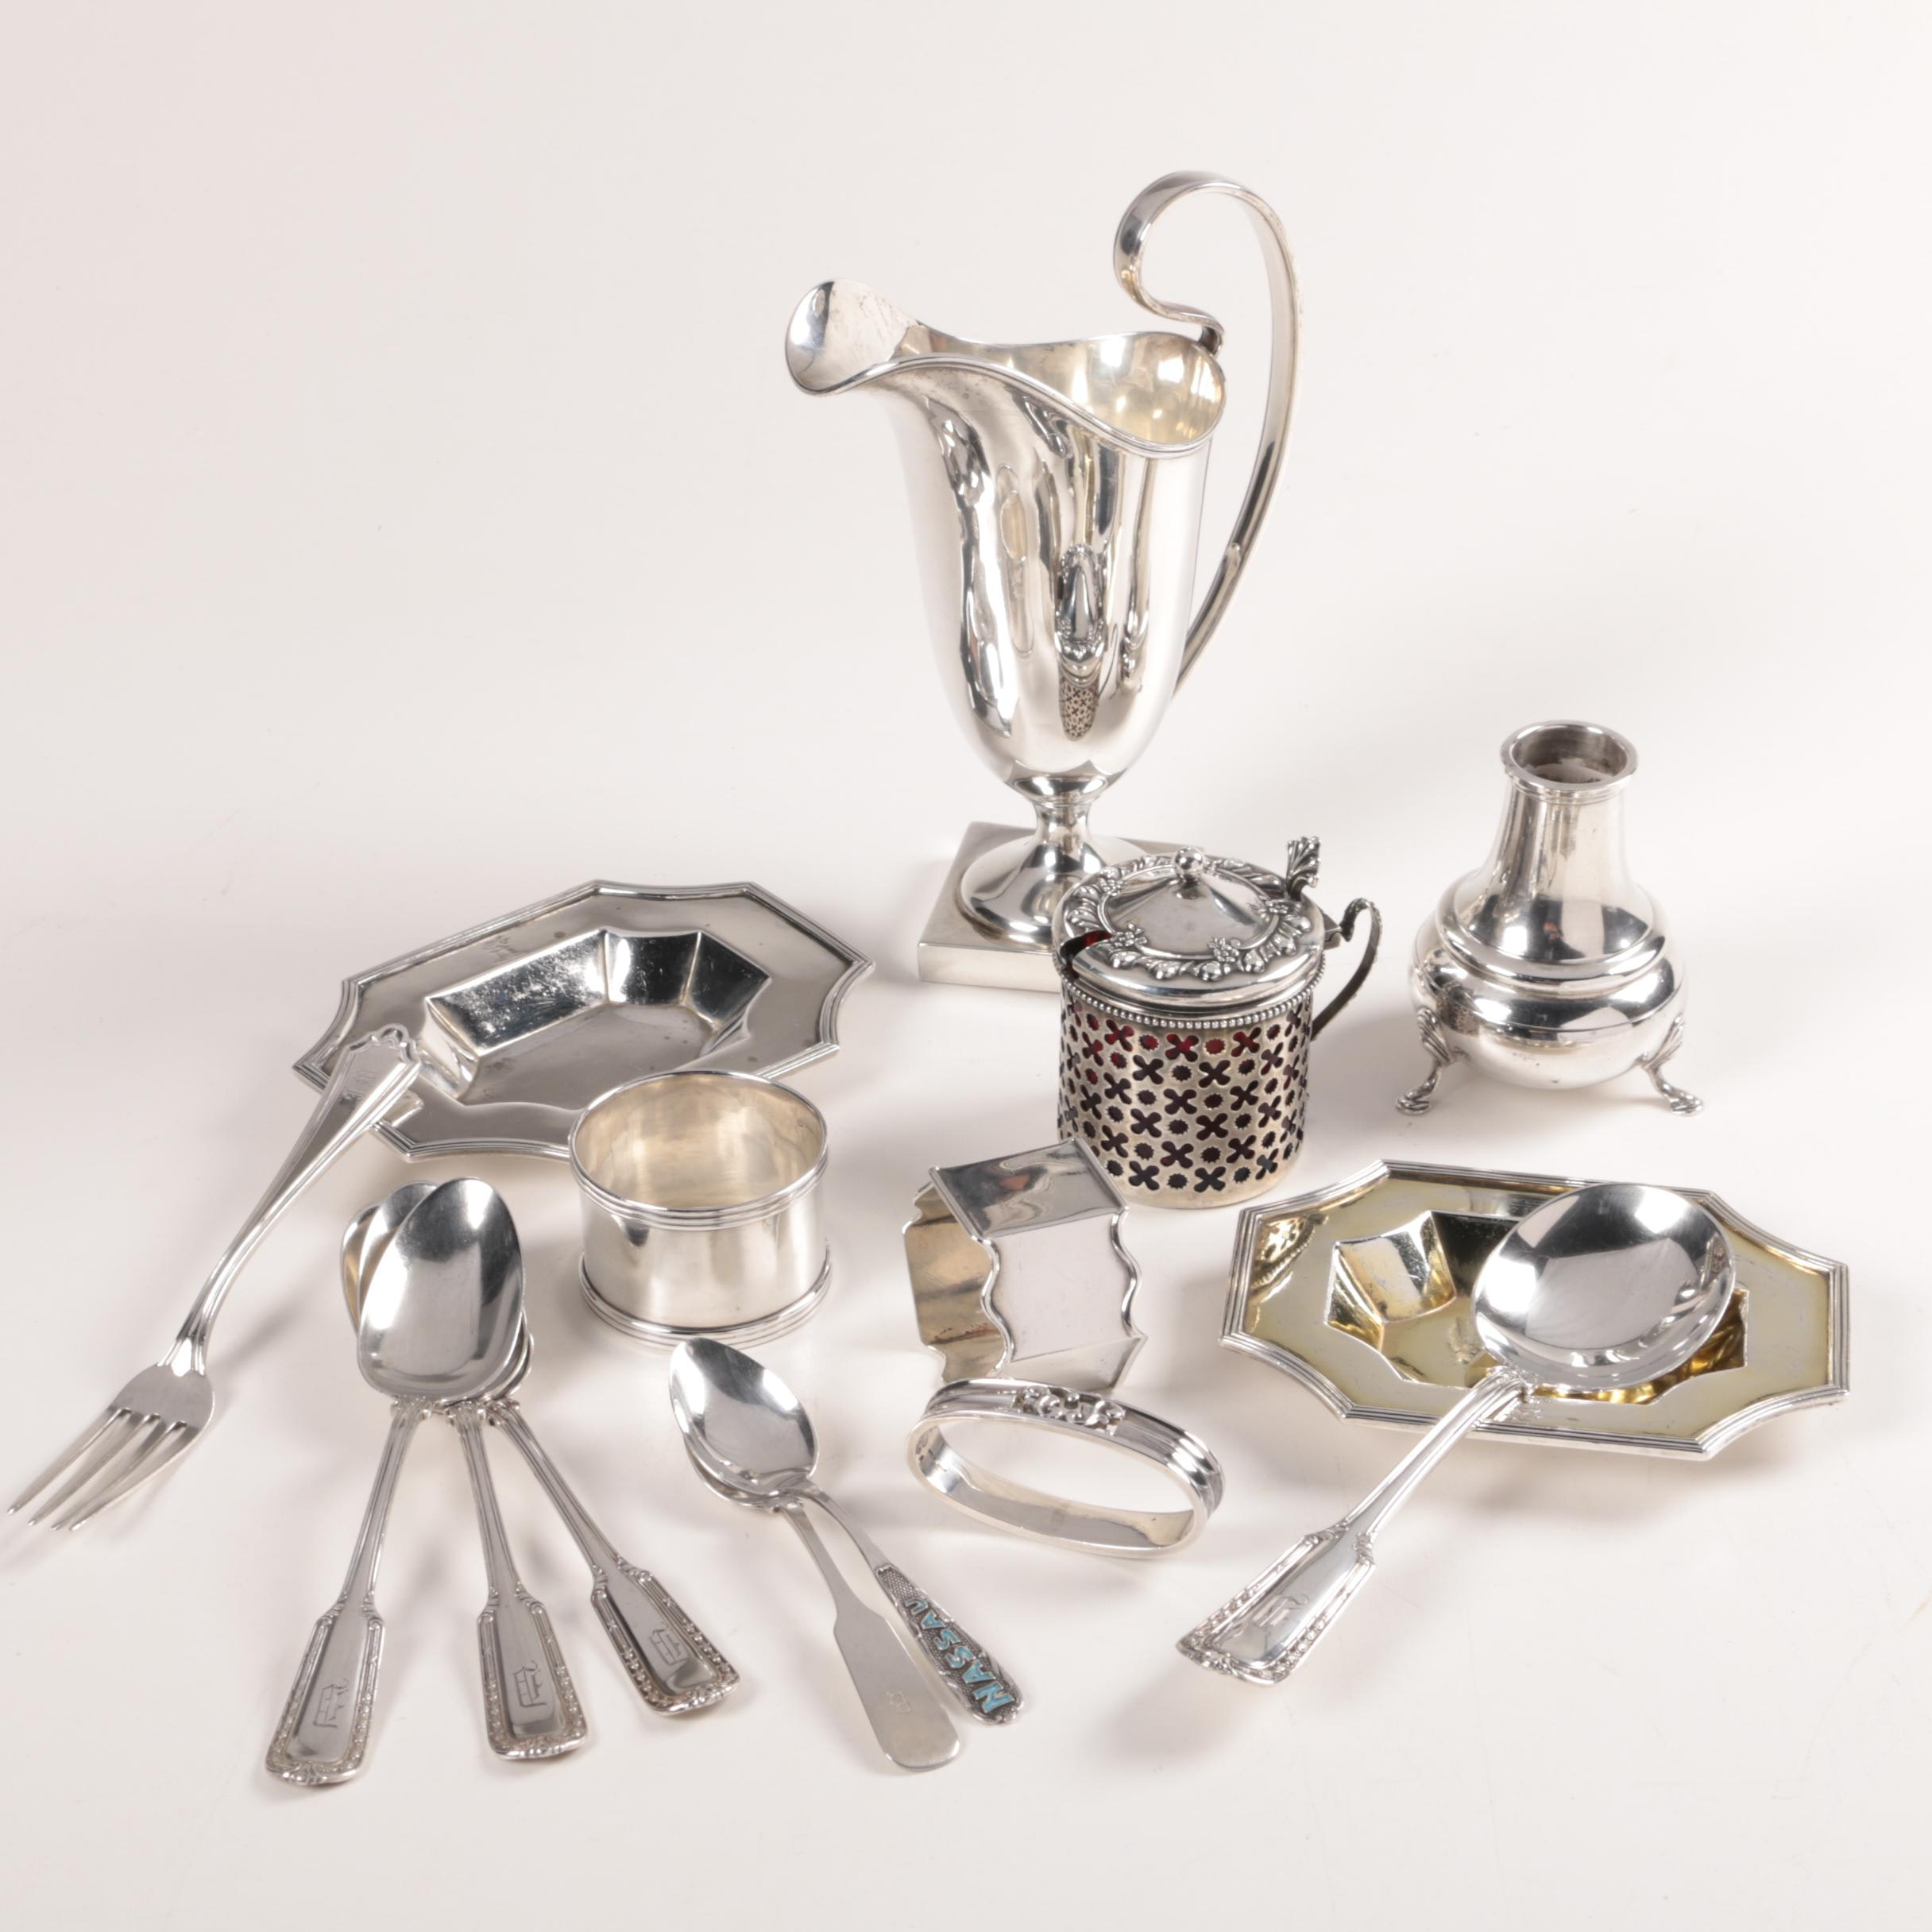 1796 British London Sterling Dishes with Other Sterling Flatware and Tableware